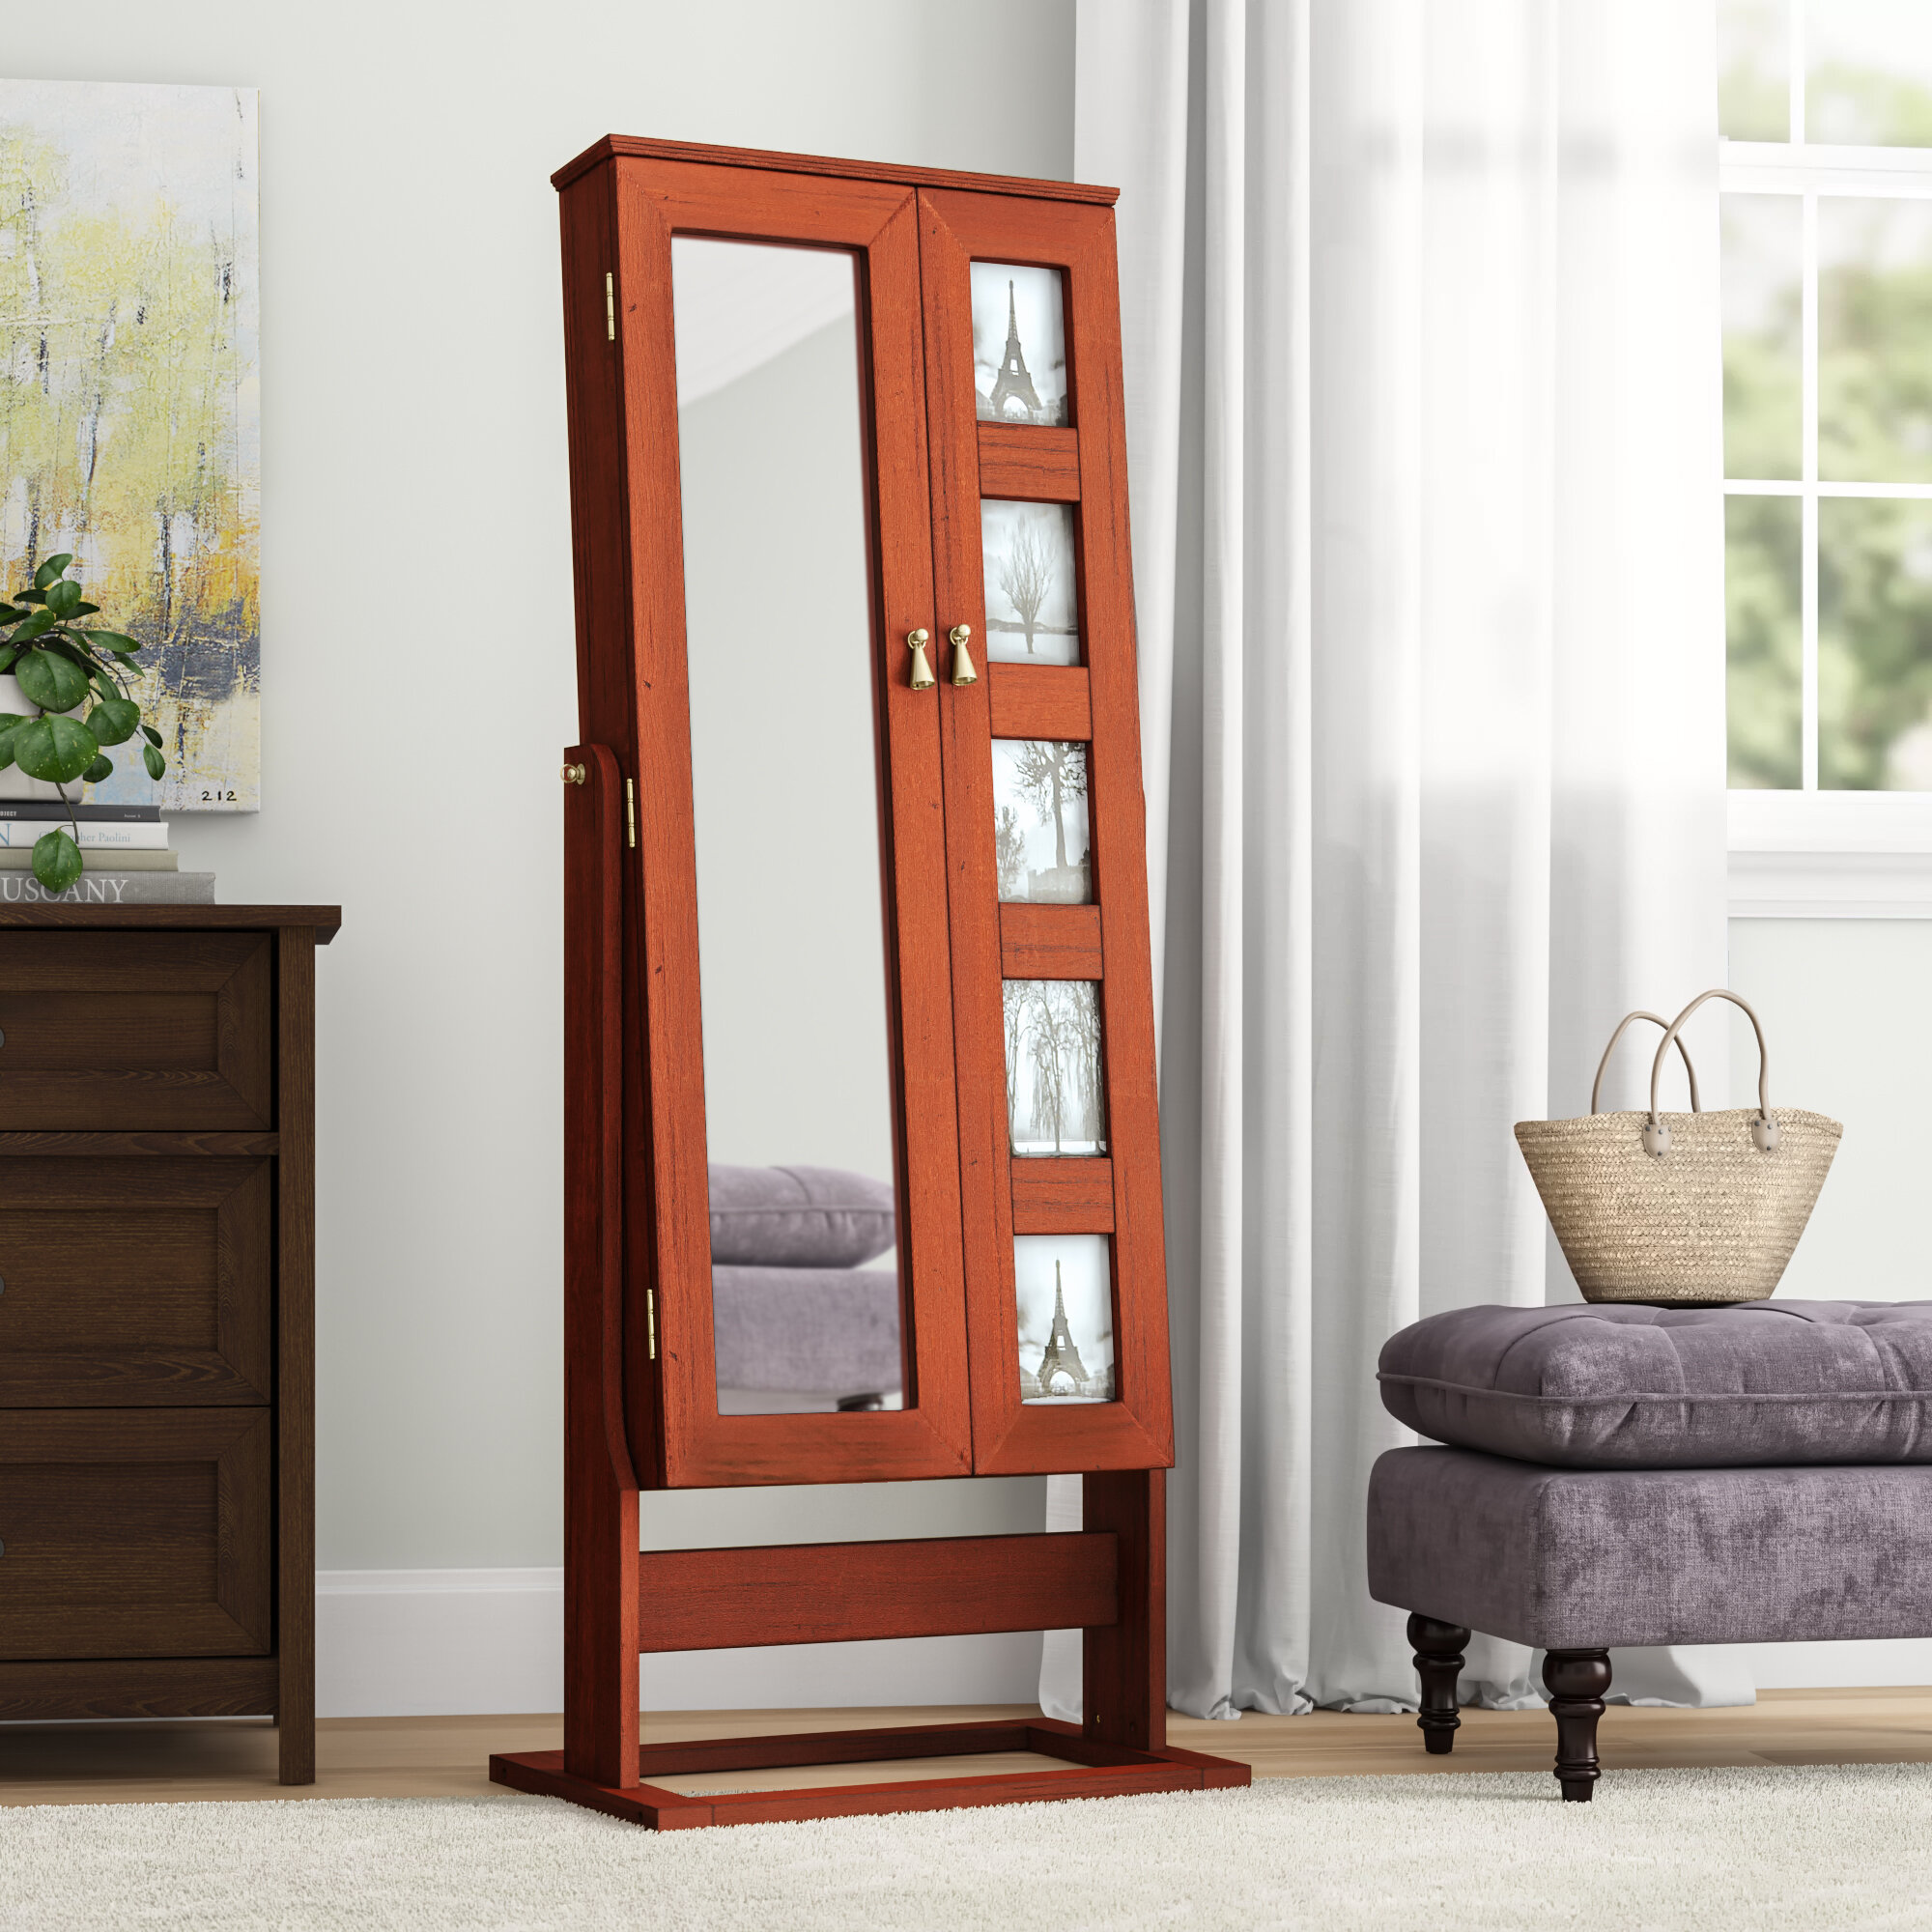 Red Barrel Studio Remsen Free Standing Jewelry Armoire With Mirror Reviews Wayfair